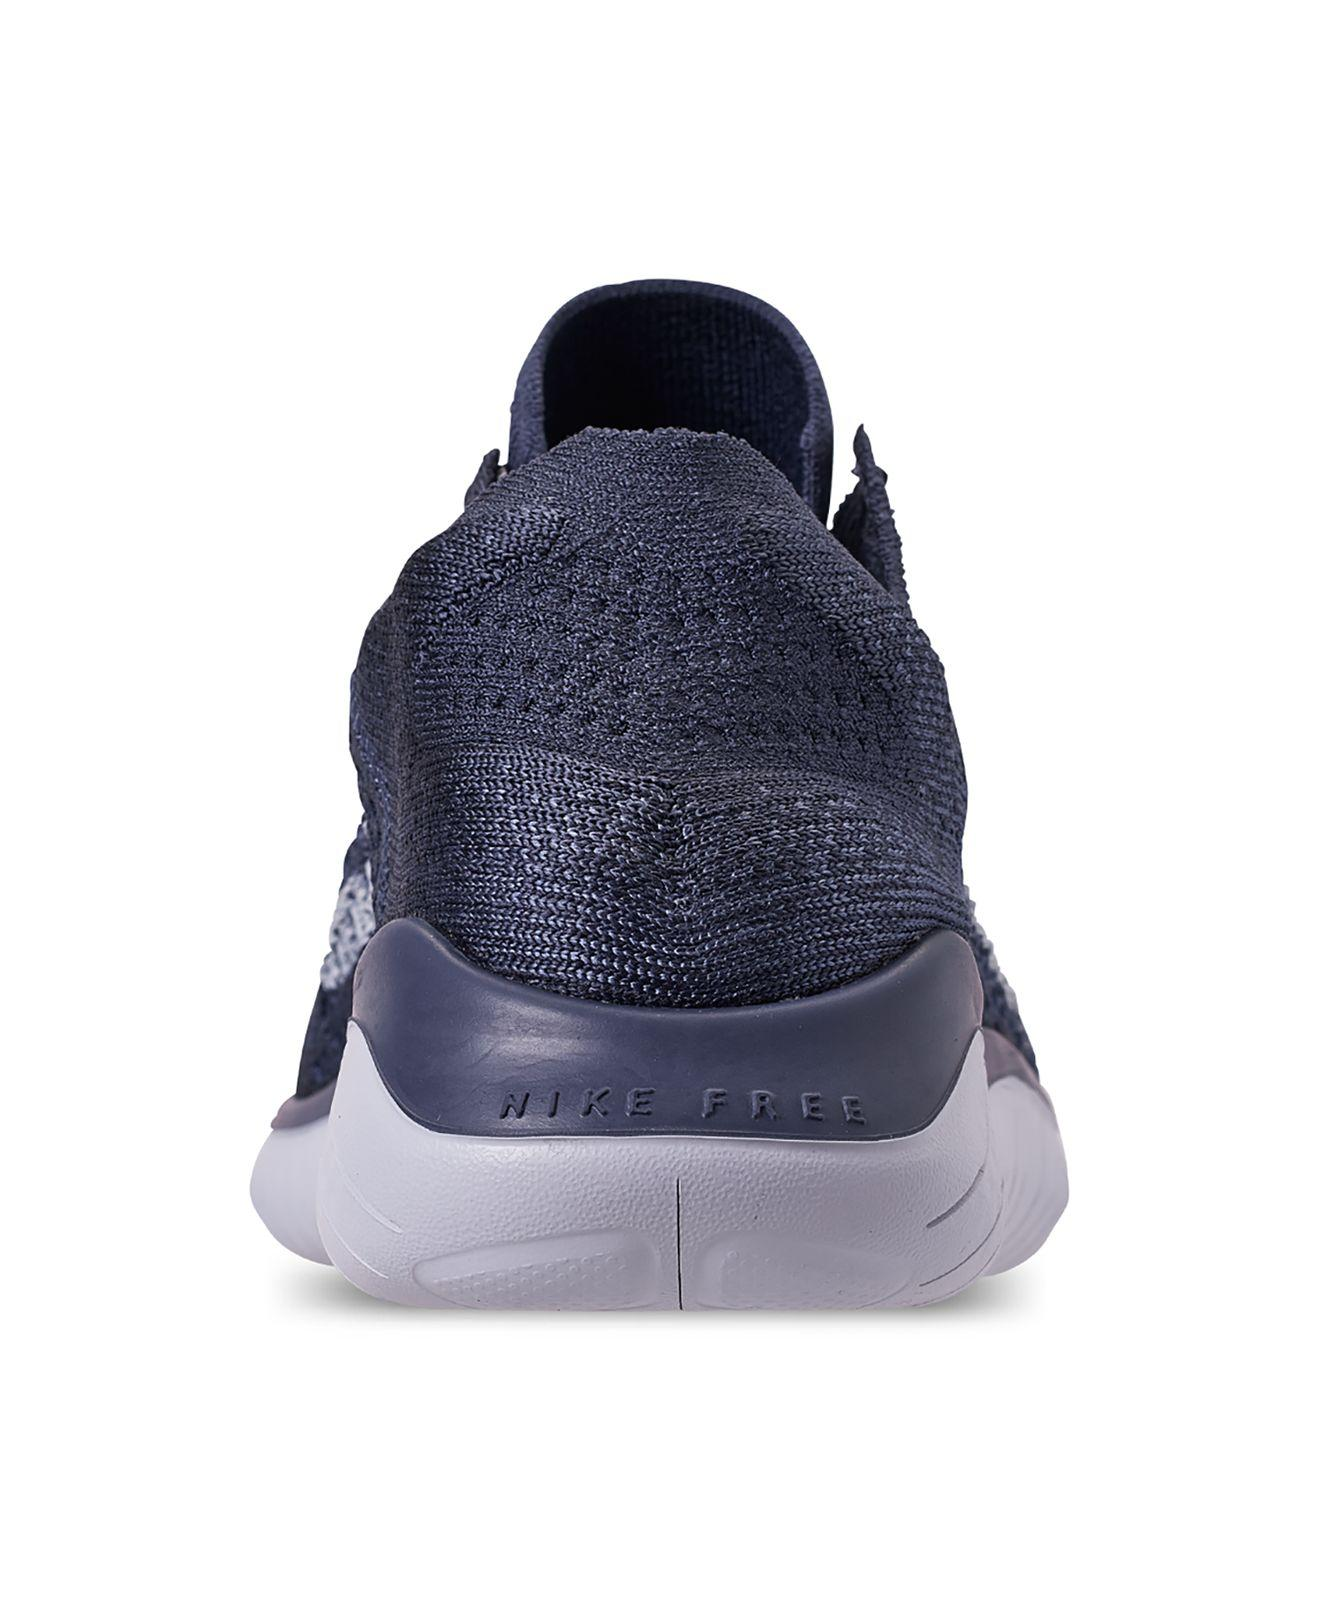 ff82bfc39f8a Lyst - Nike Free Rn Flyknit 2018 Running Sneakers From Finish Line in Blue  for Men